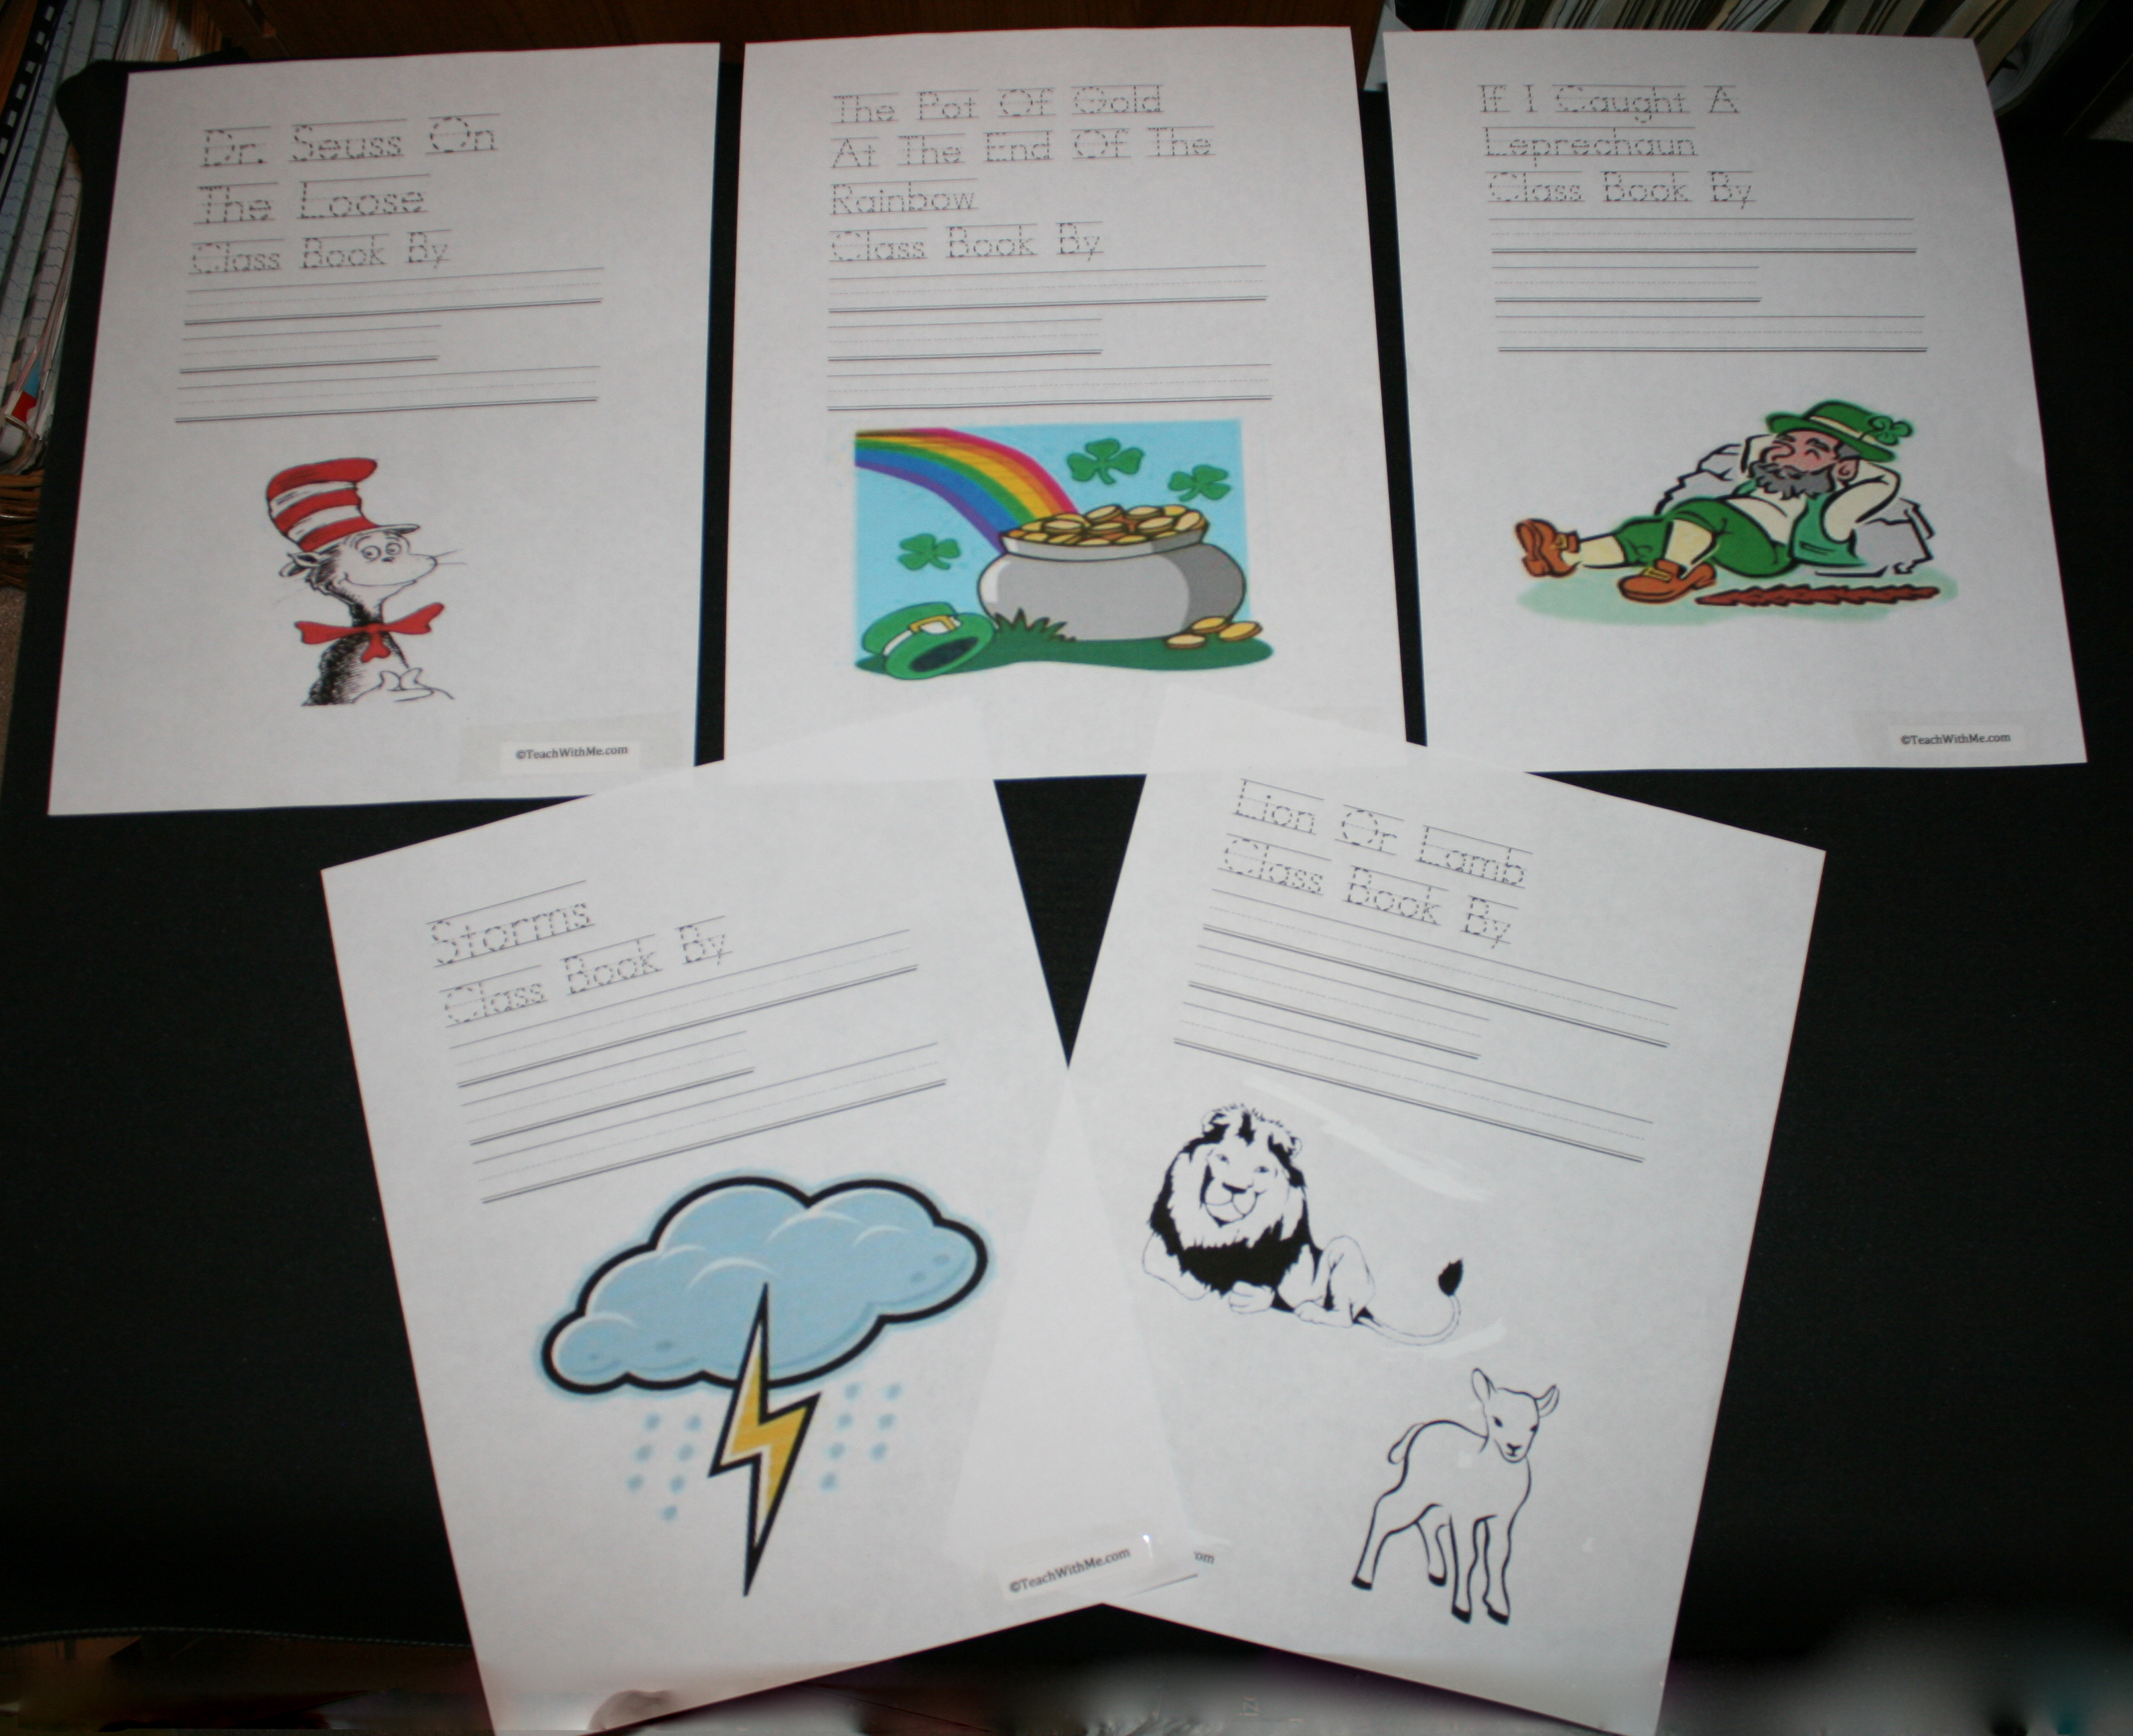 rainbow activities, rainbow booklet, rainbow song, color words, patterns, ordinal numbers, teaching ordinal numbers, ordinal number activities, writing prompts for march, march writing prompts, class books, making class books, class books for spring, writing class books, class books for march, lion and lamb activities, storm activities, Dr. Seuss activities, Dr. Seuss booklet, Dr. Seuss writing prompts, St. Patrick's Day activities, St. Patrick's Day writing prompts, St. patrick's Day booklet,